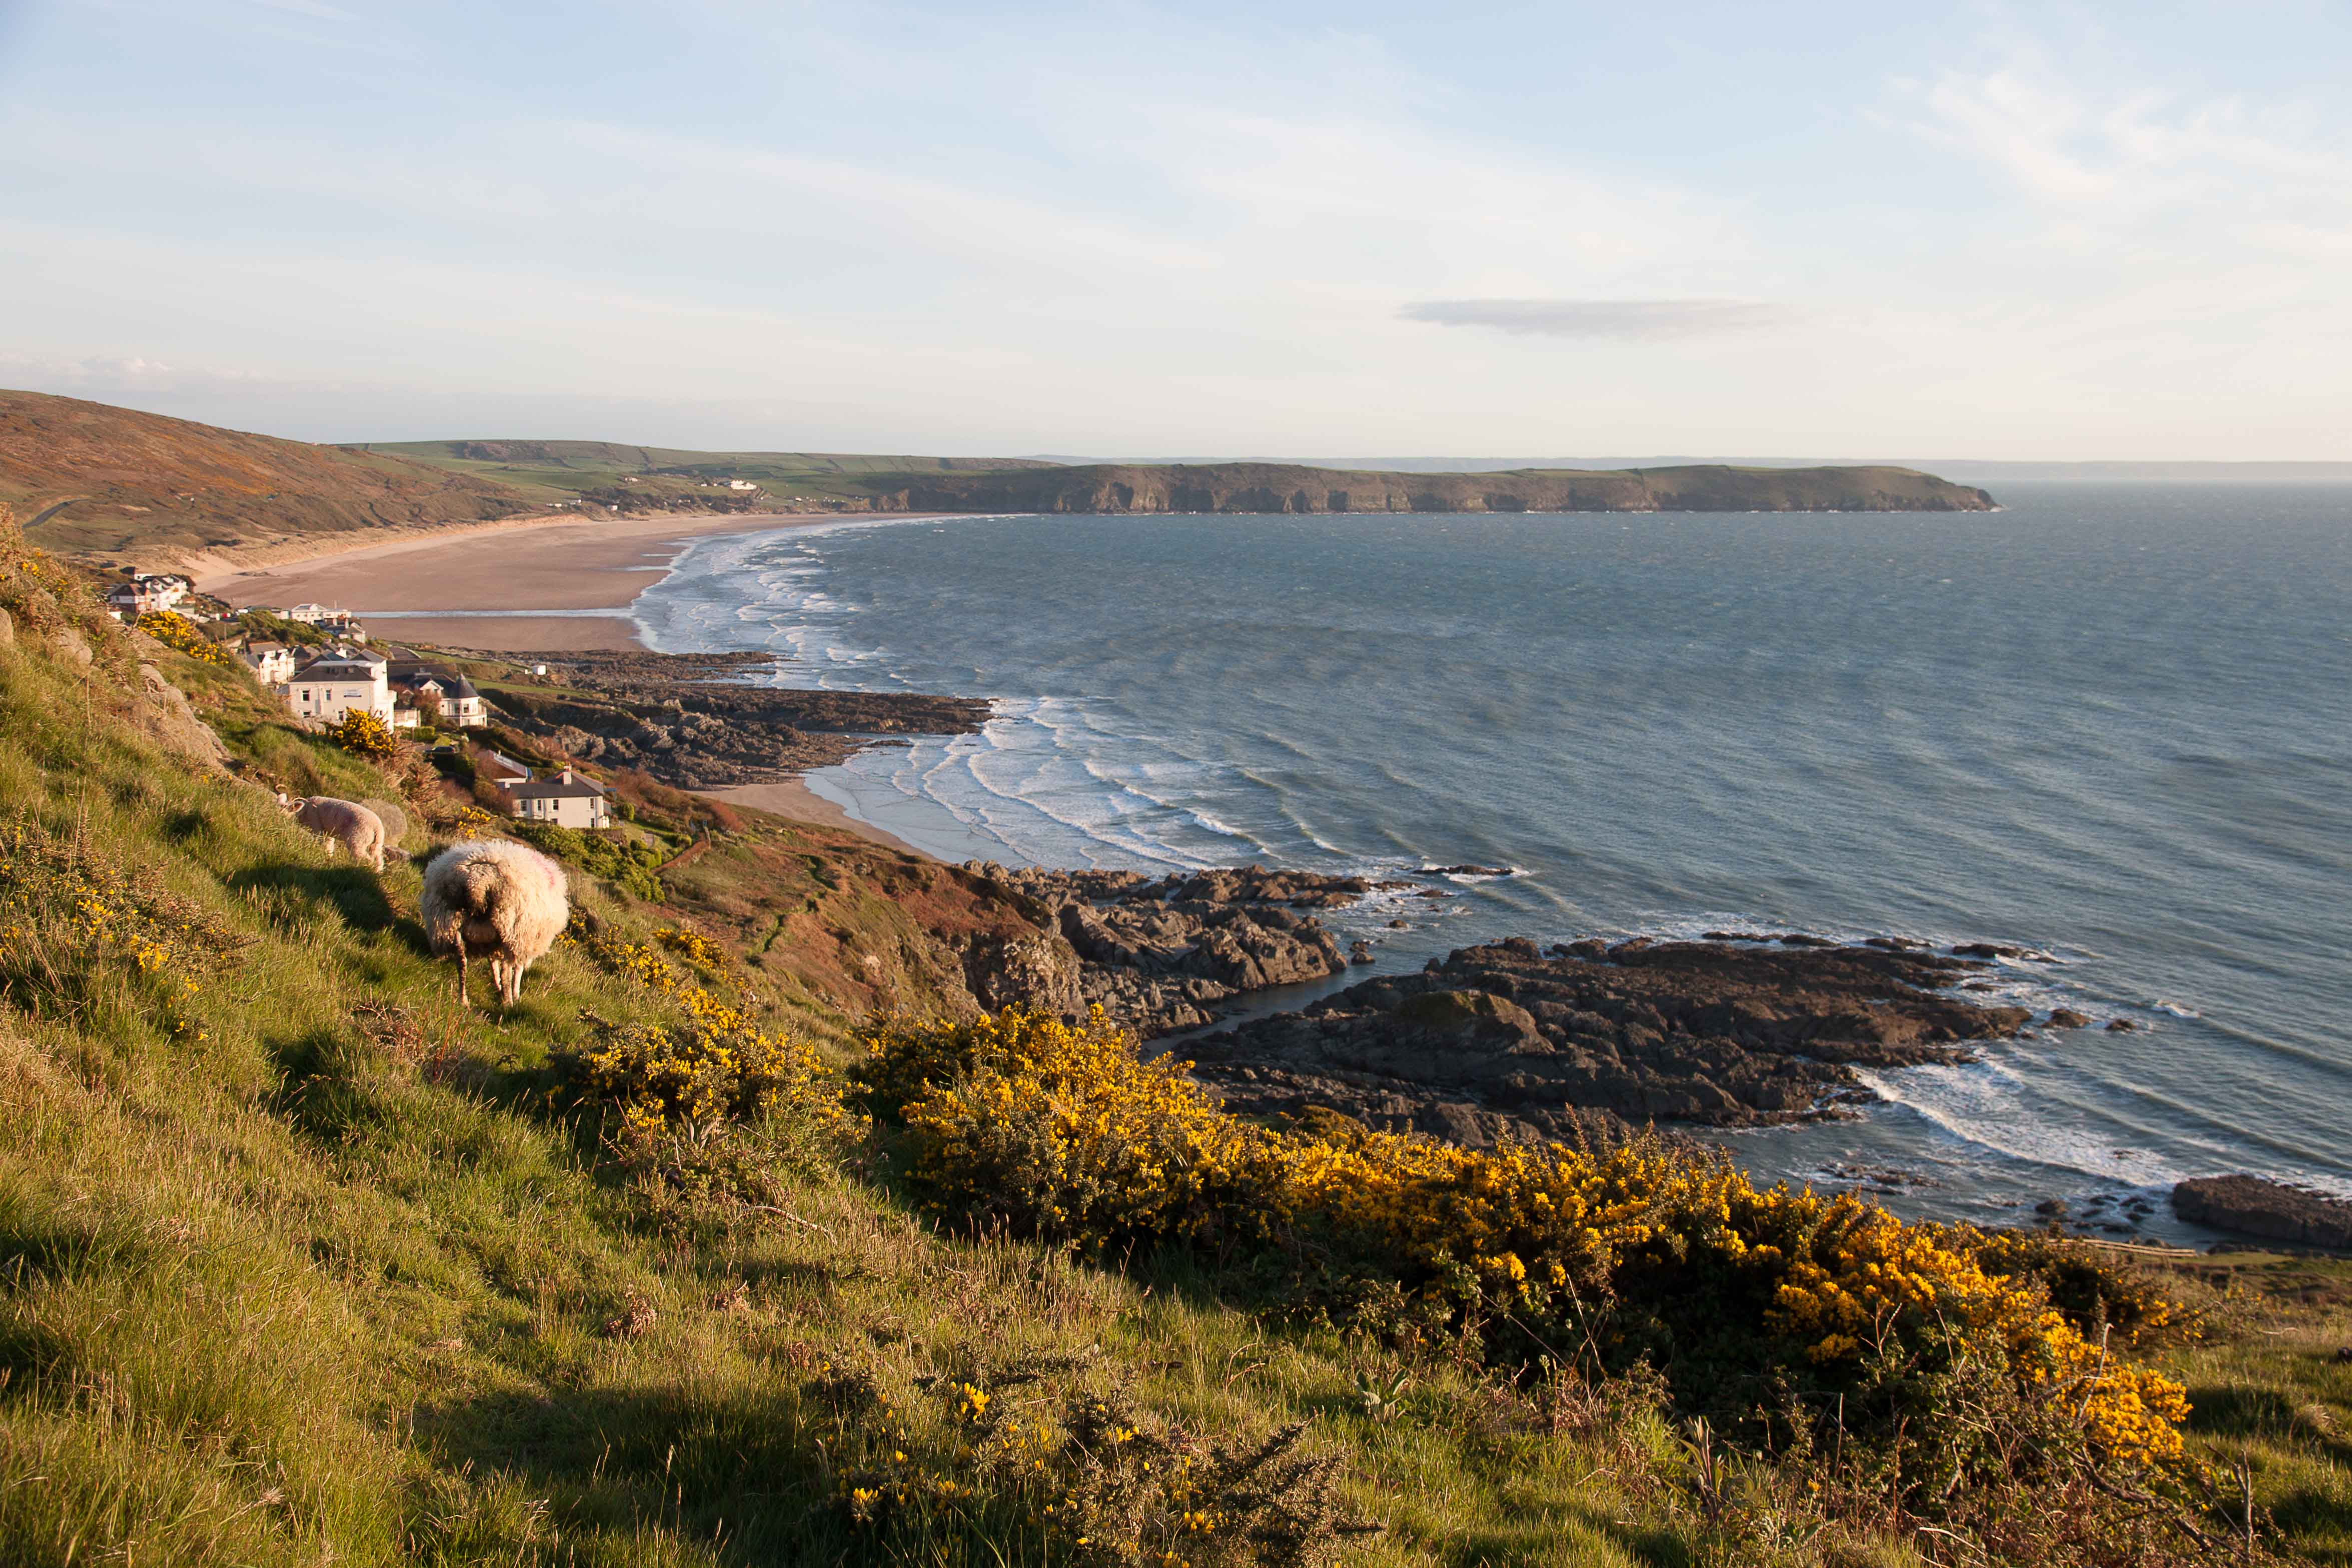 View from Morte Point down Woolacombe/Putsborough Beach towards Baggy Point. April 2015